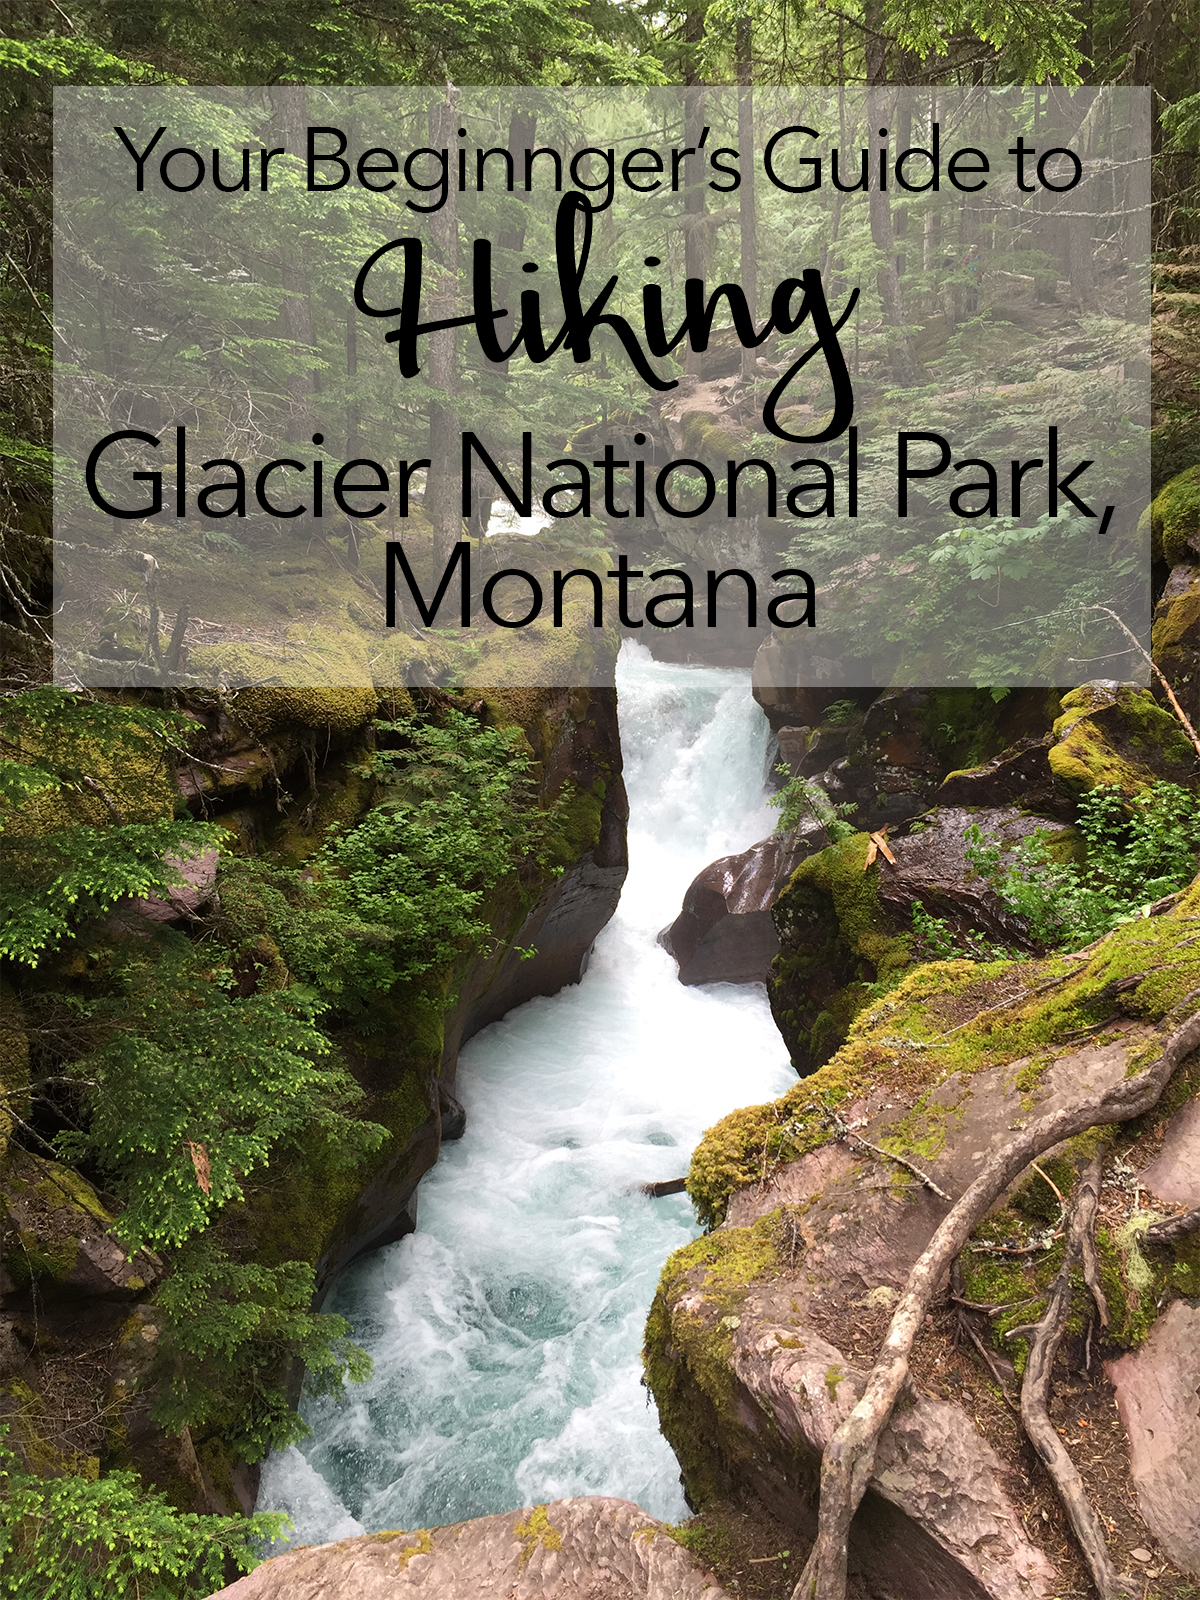 Glacier National Park Hiking recommendations